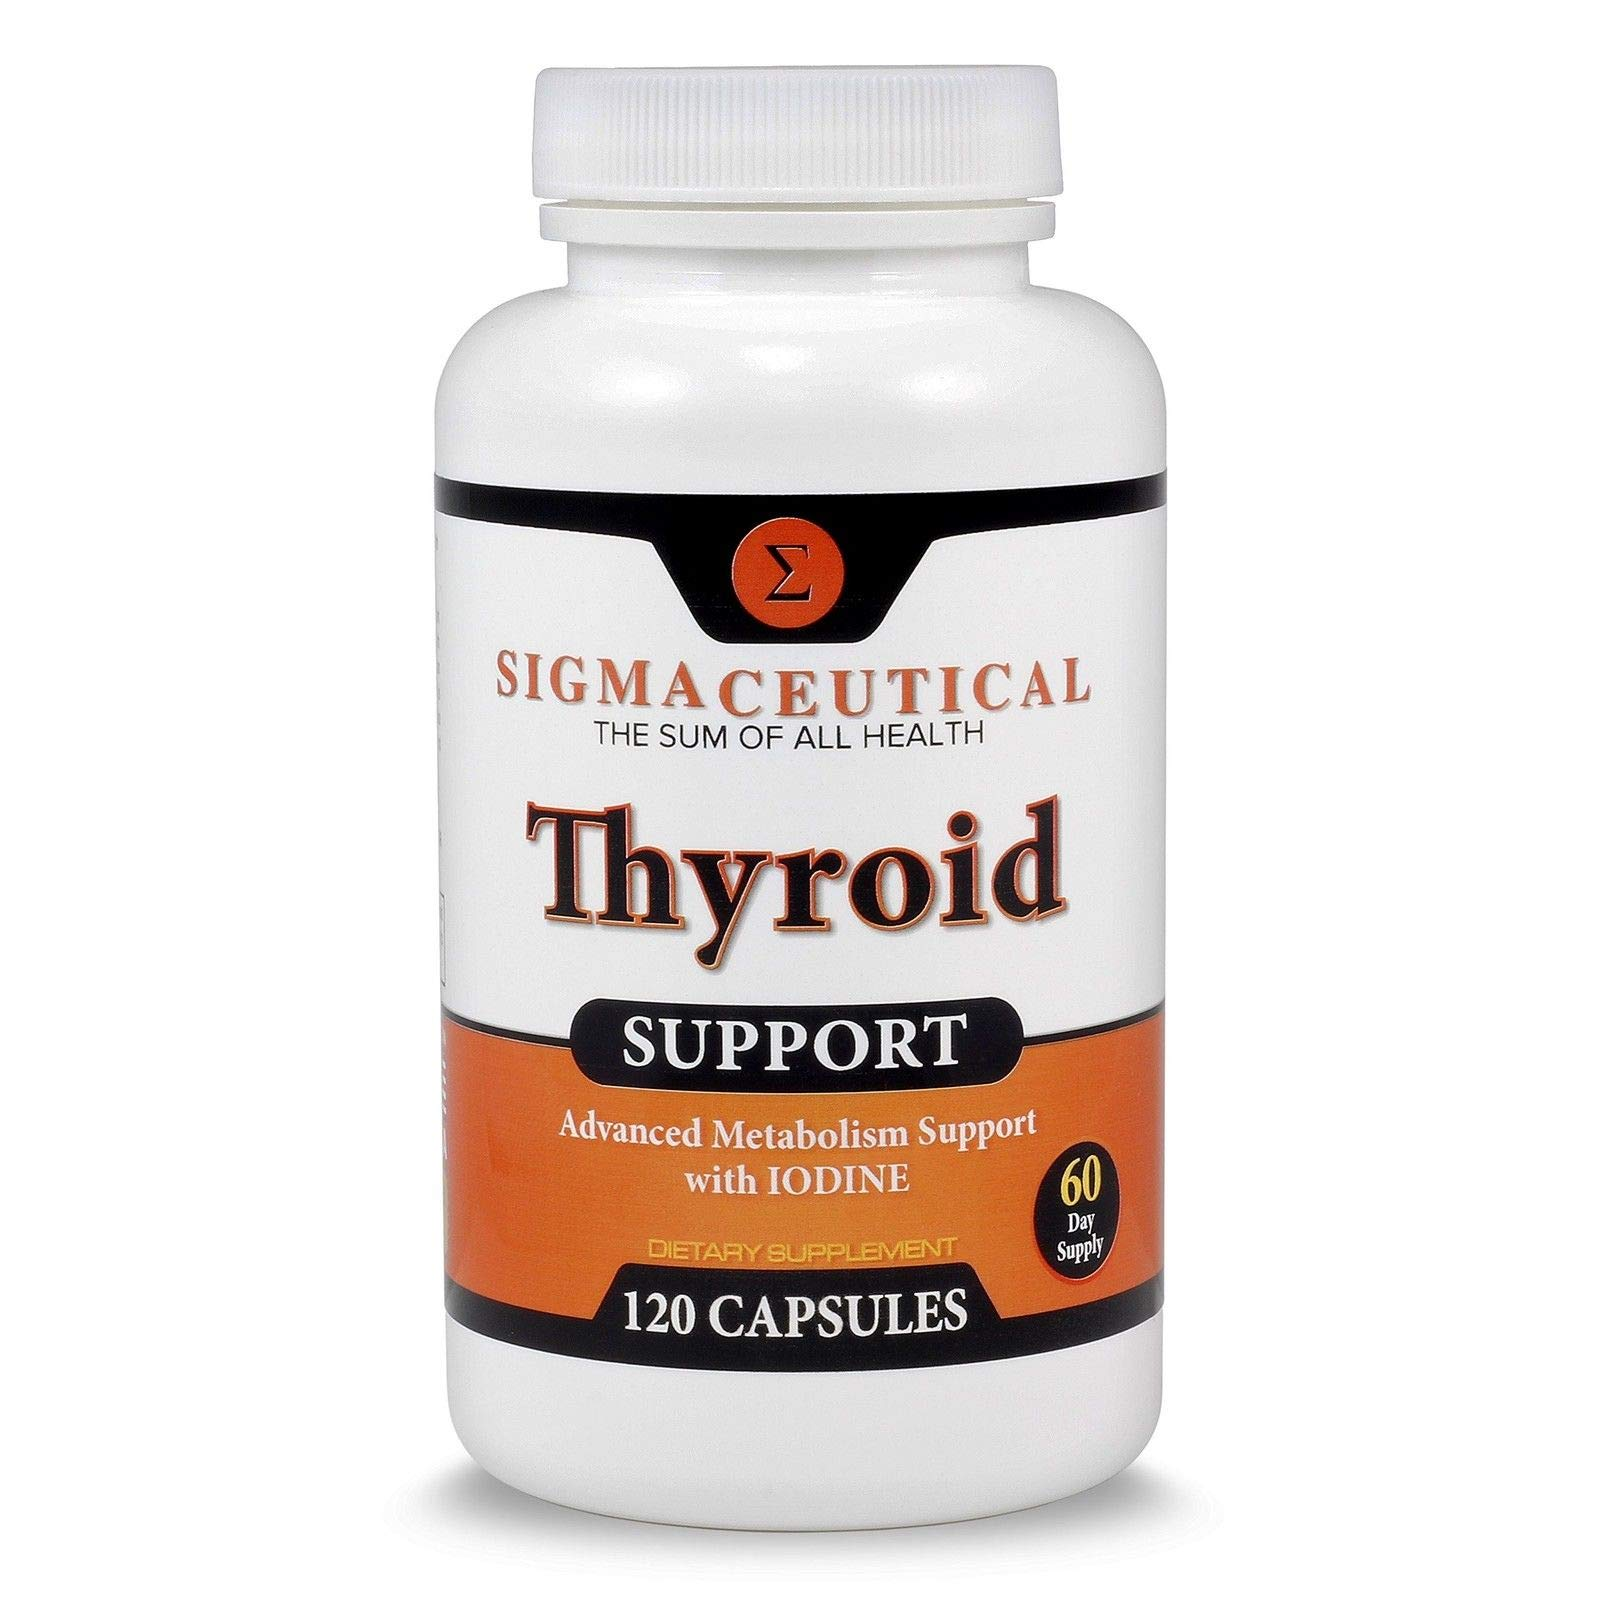 #1 Best Thyroid Support with Iodine Supplement for Energy Metabolism Boost 60 Tablets